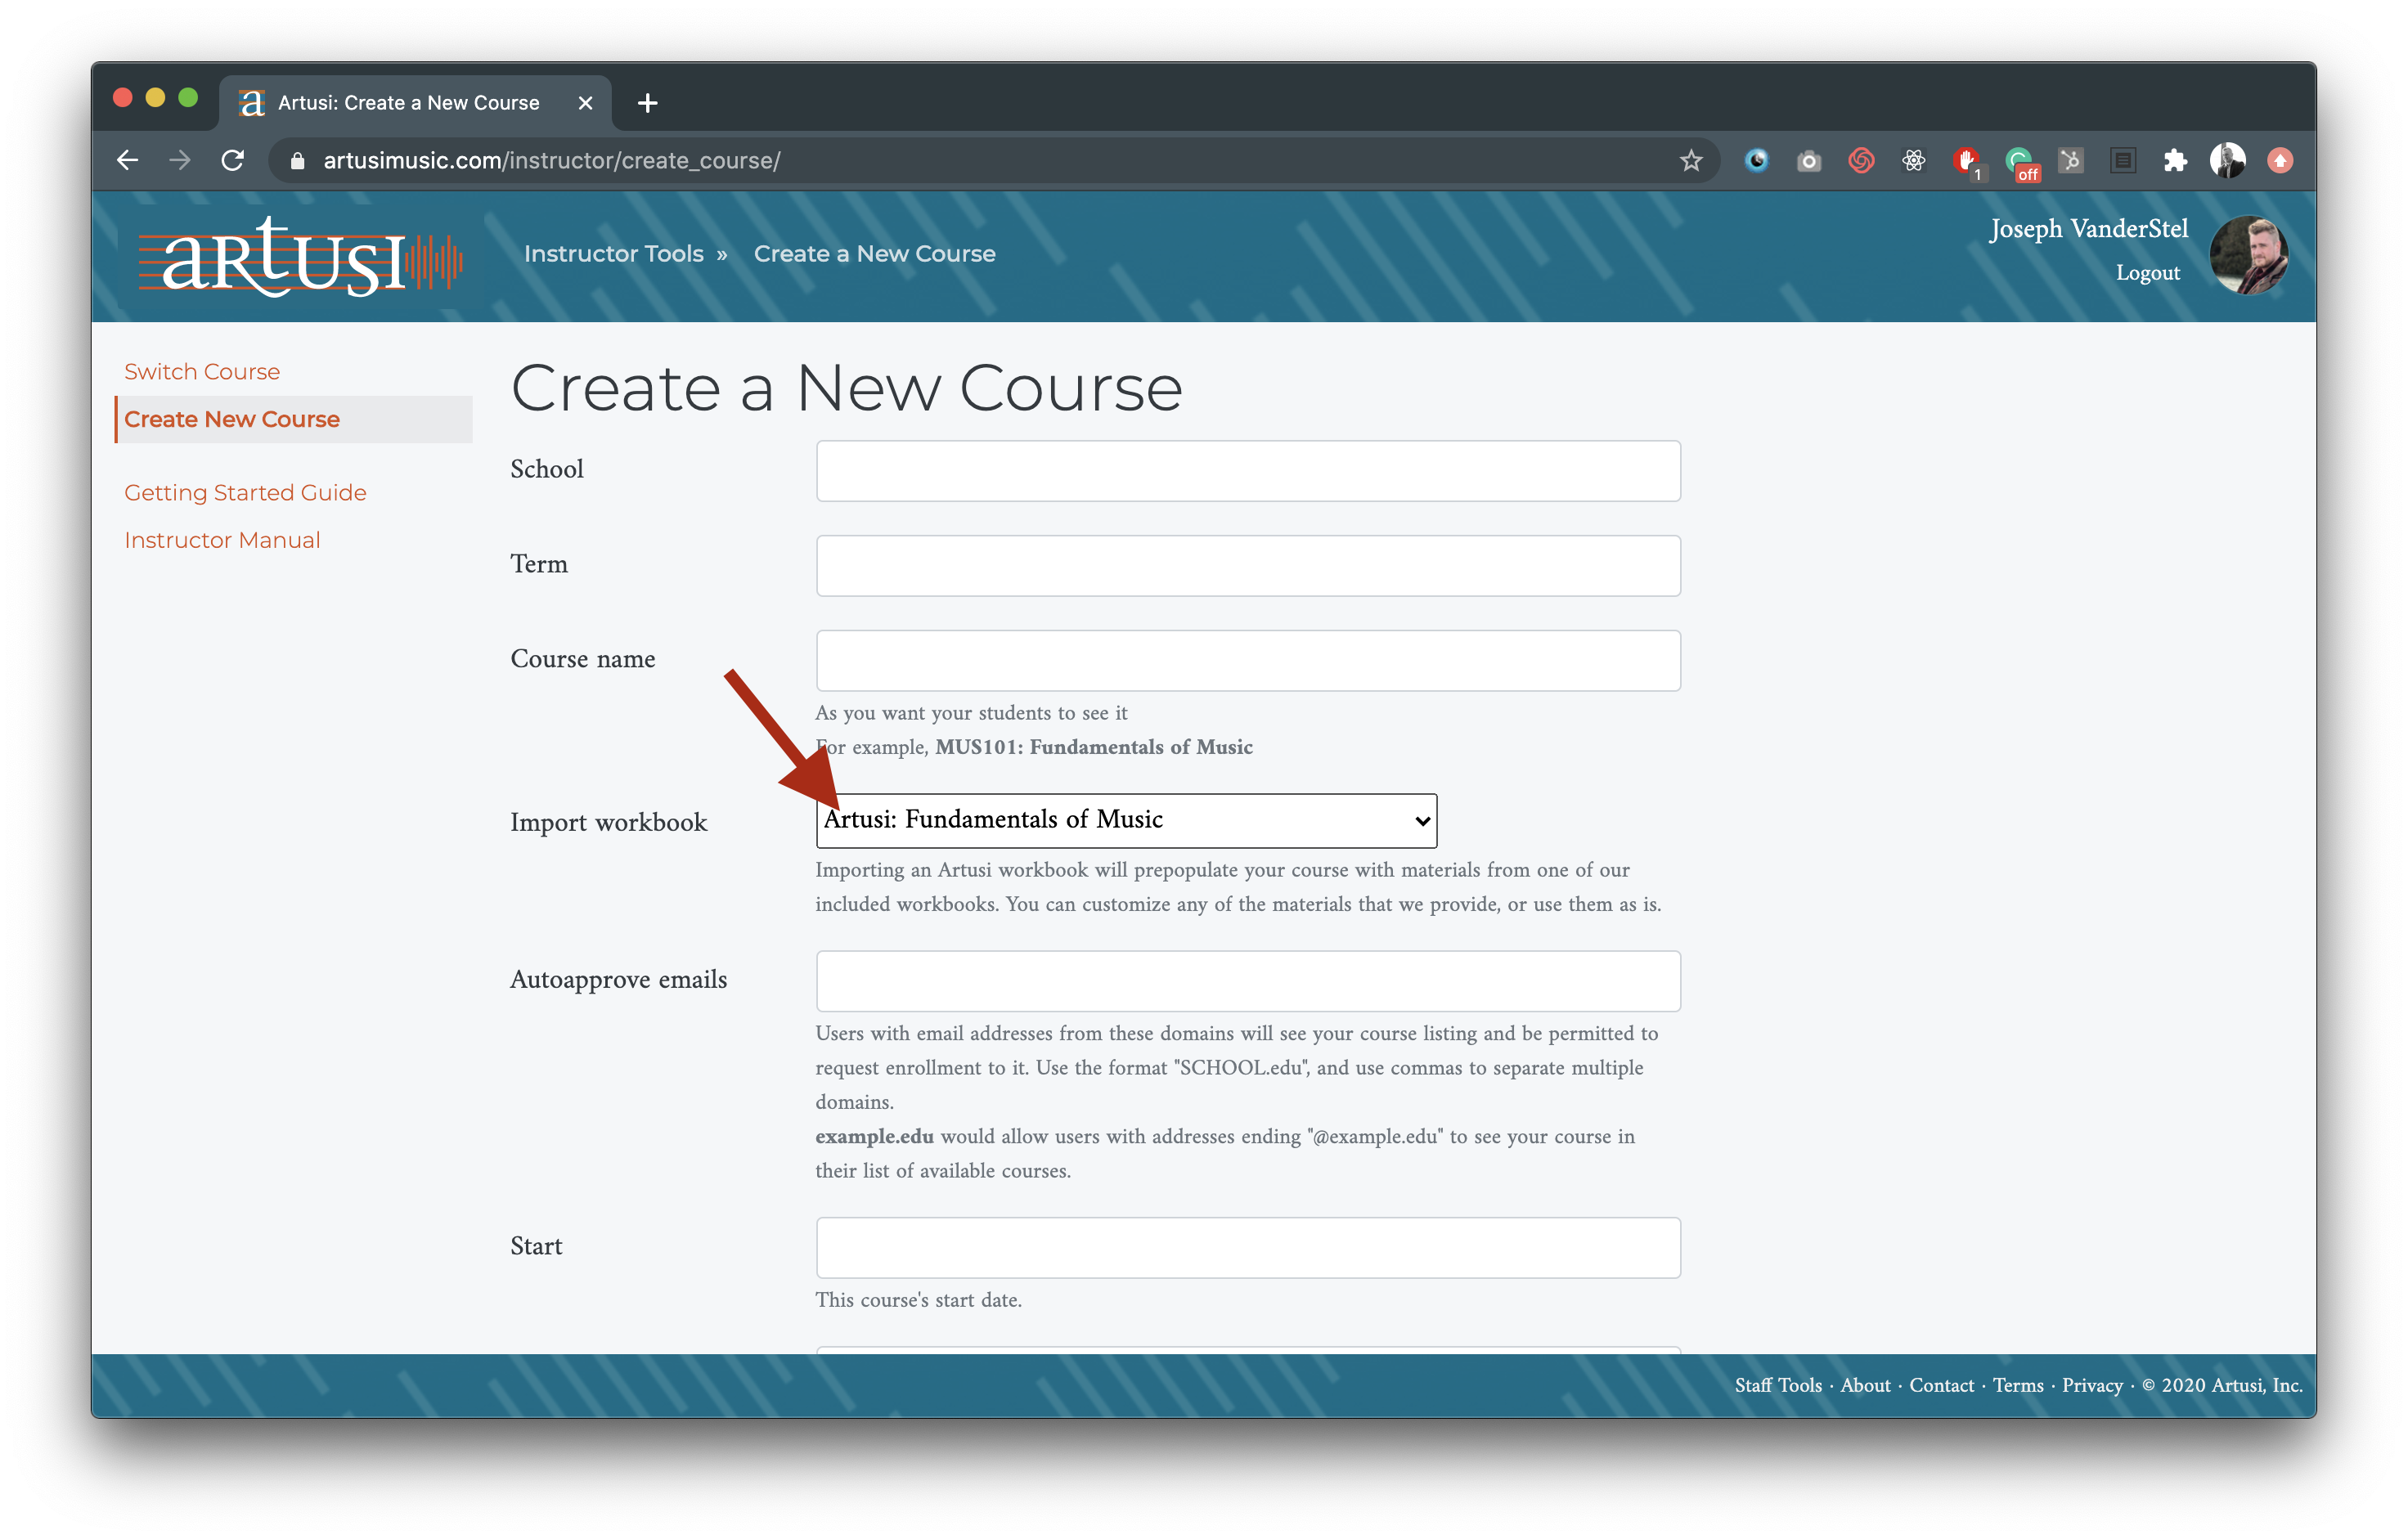 Create course page with arrow pointing to Import curriculum